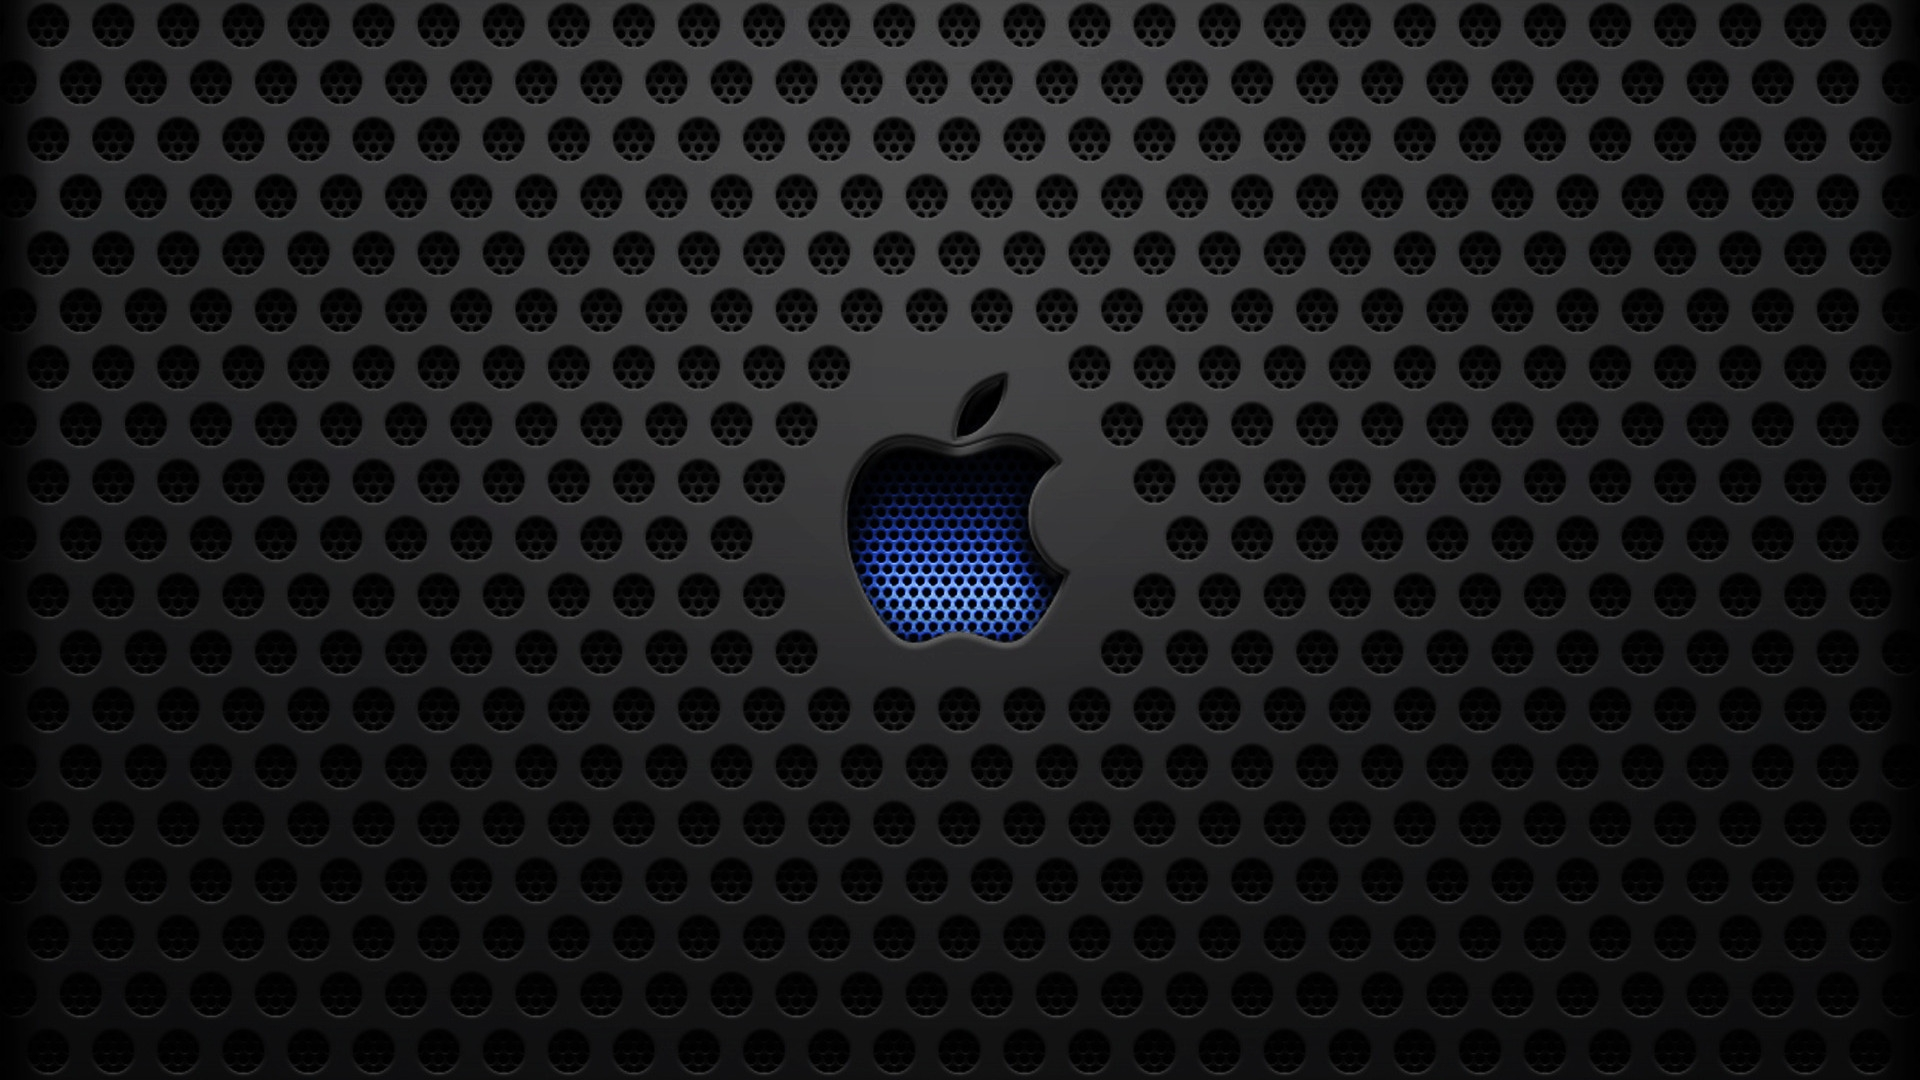 Iphone 7 Wallpapers Hd: Apple IPhone Wallpapers High Quality